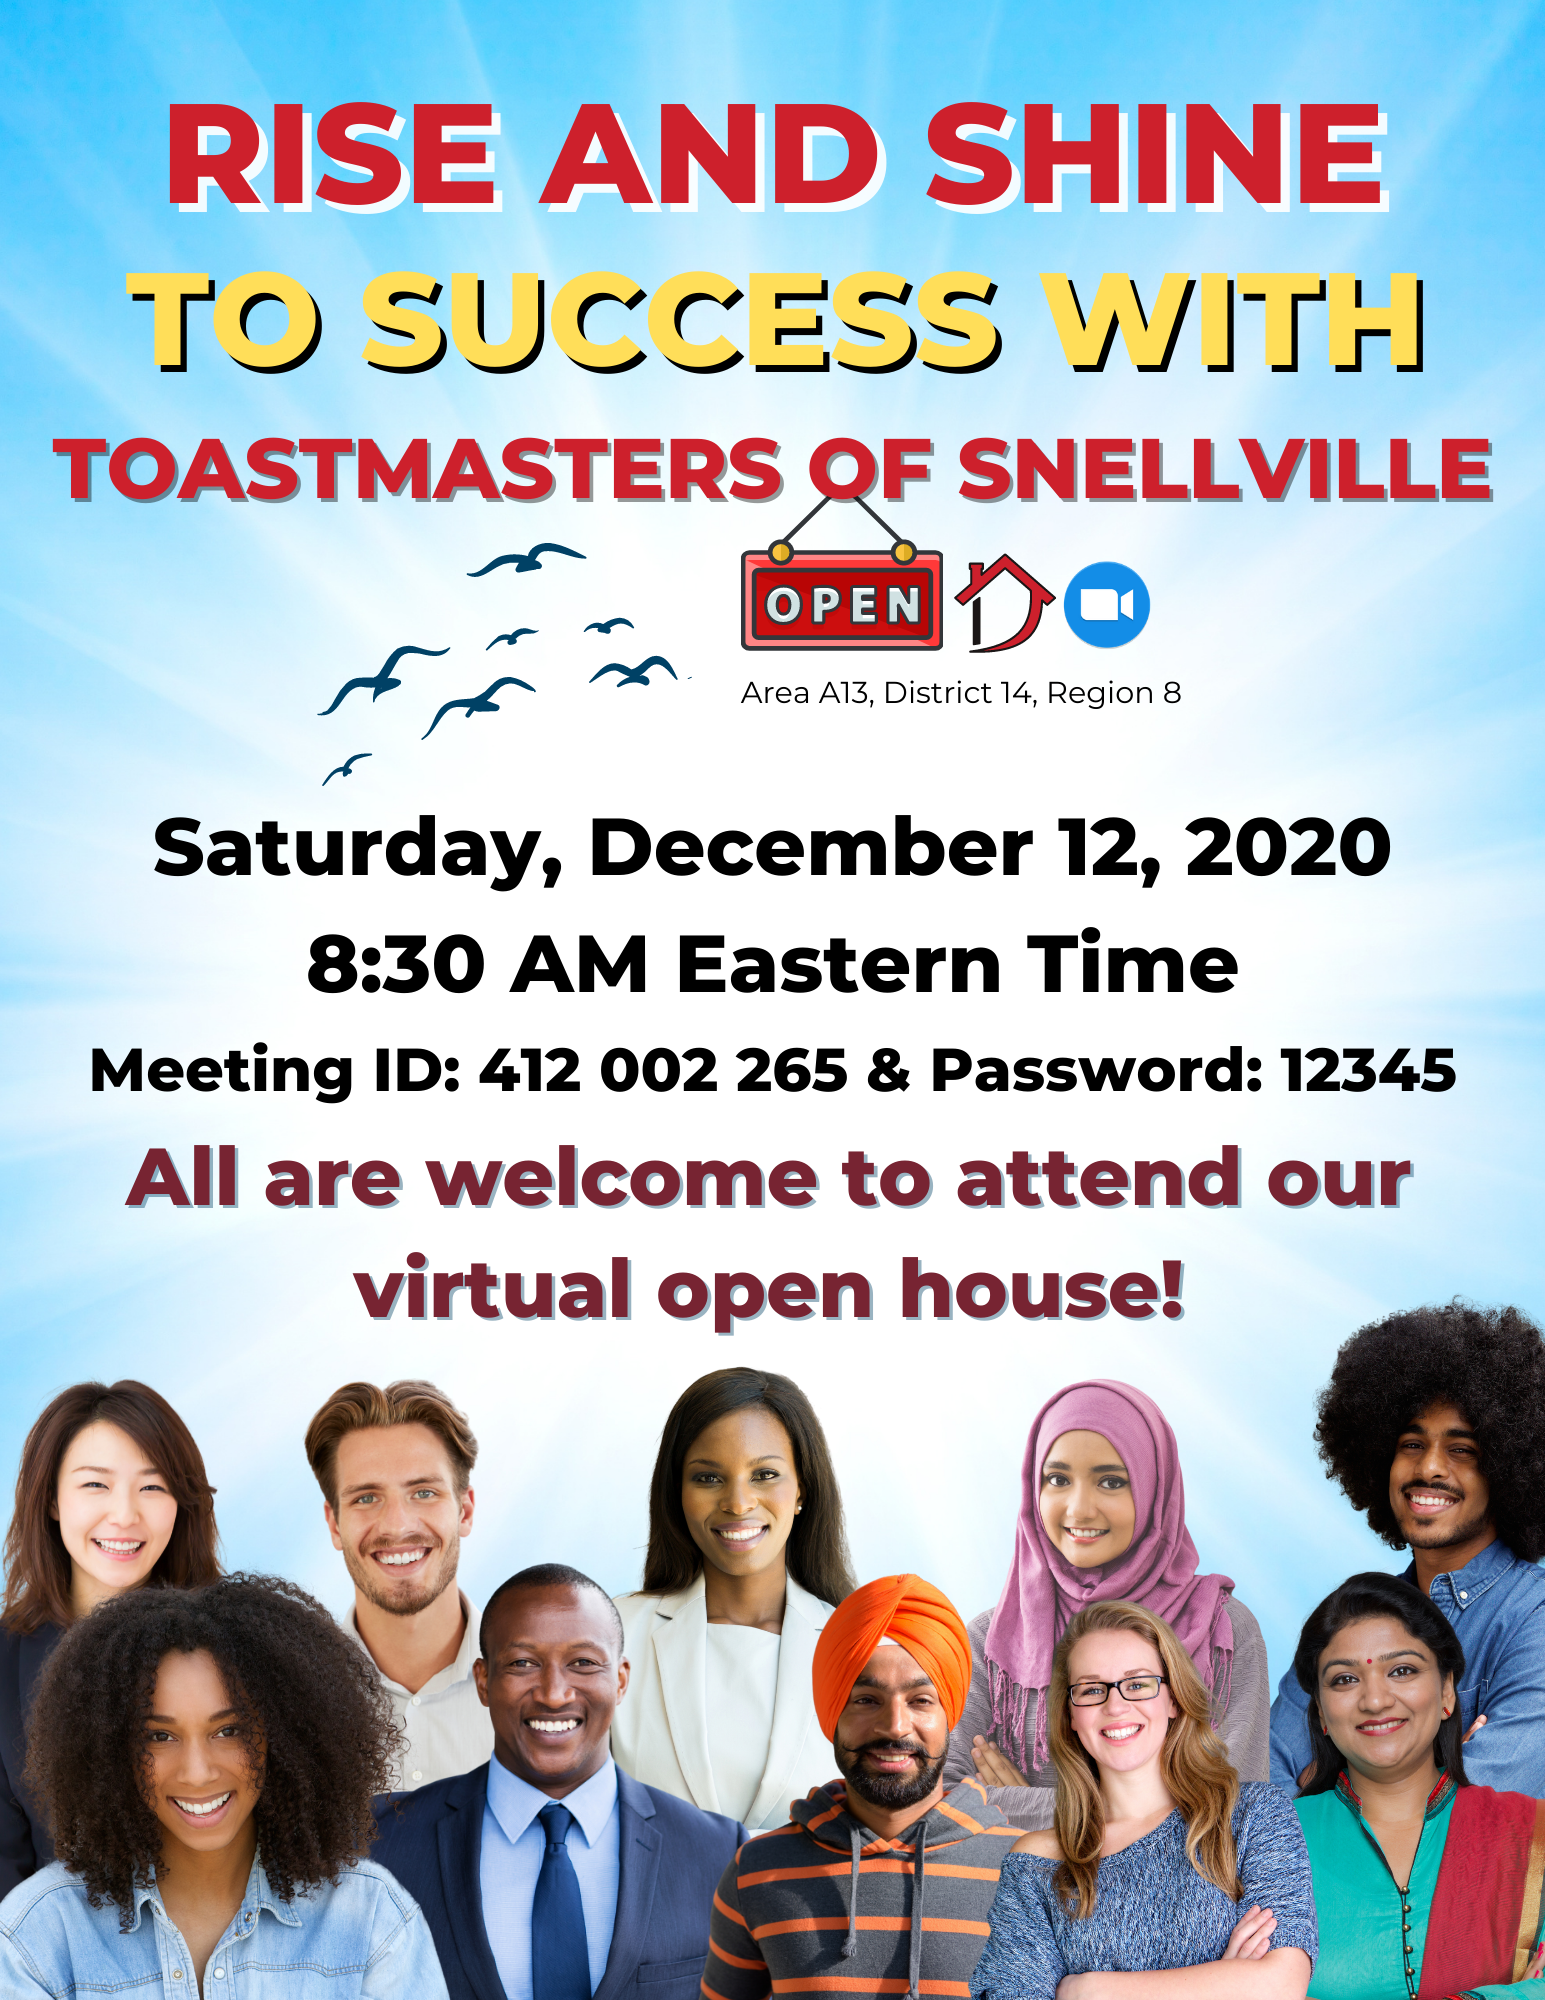 Rise and Shine to Success_Toastmasters of Snellville Open House